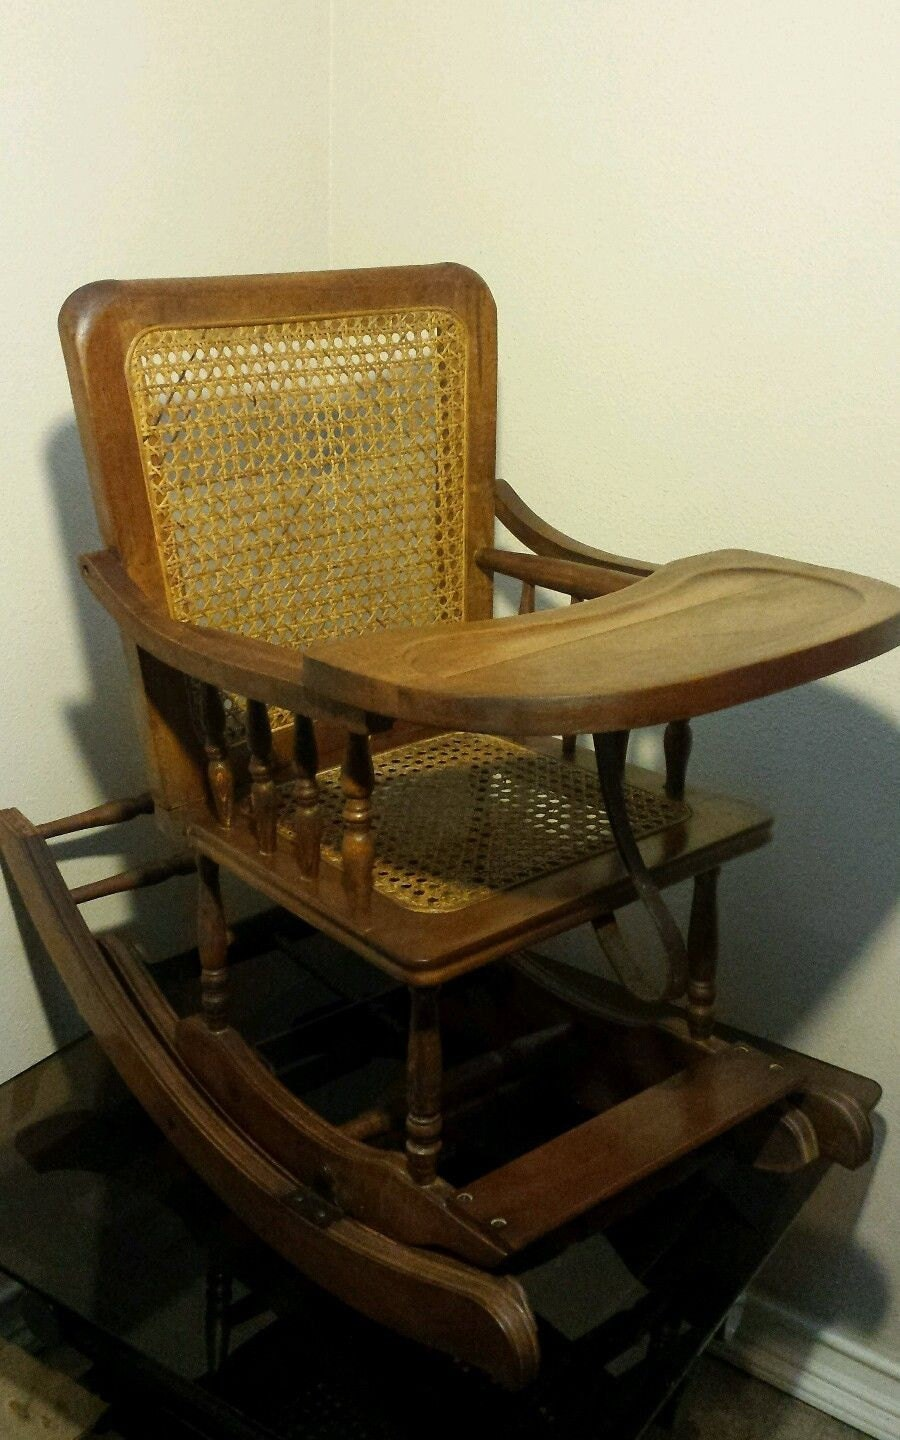 Antique adjustable high chair -  Zoom